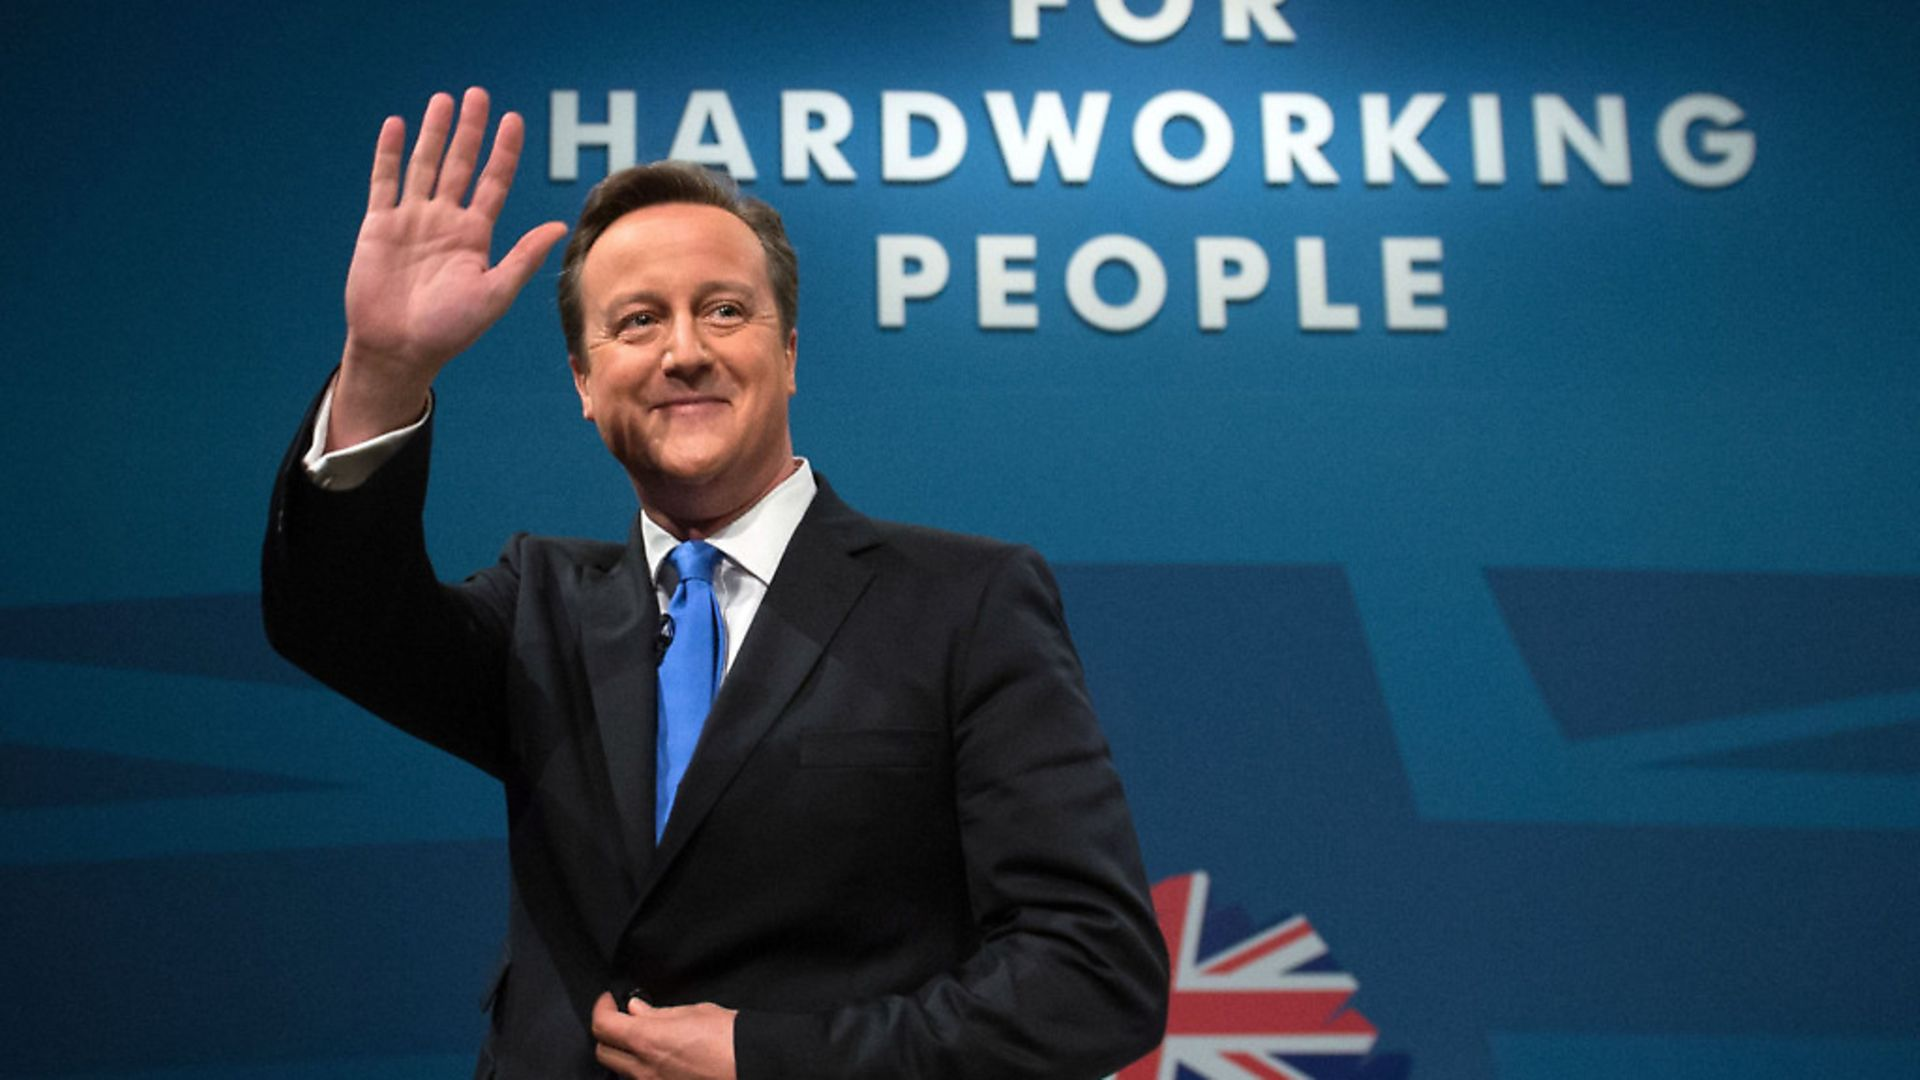 Prime Minister David Cameron waves after making his keynote speech on the final day of the Conservative Party Conference at Manchester Central in Manchester. - Credit: PA Archive/PA Images